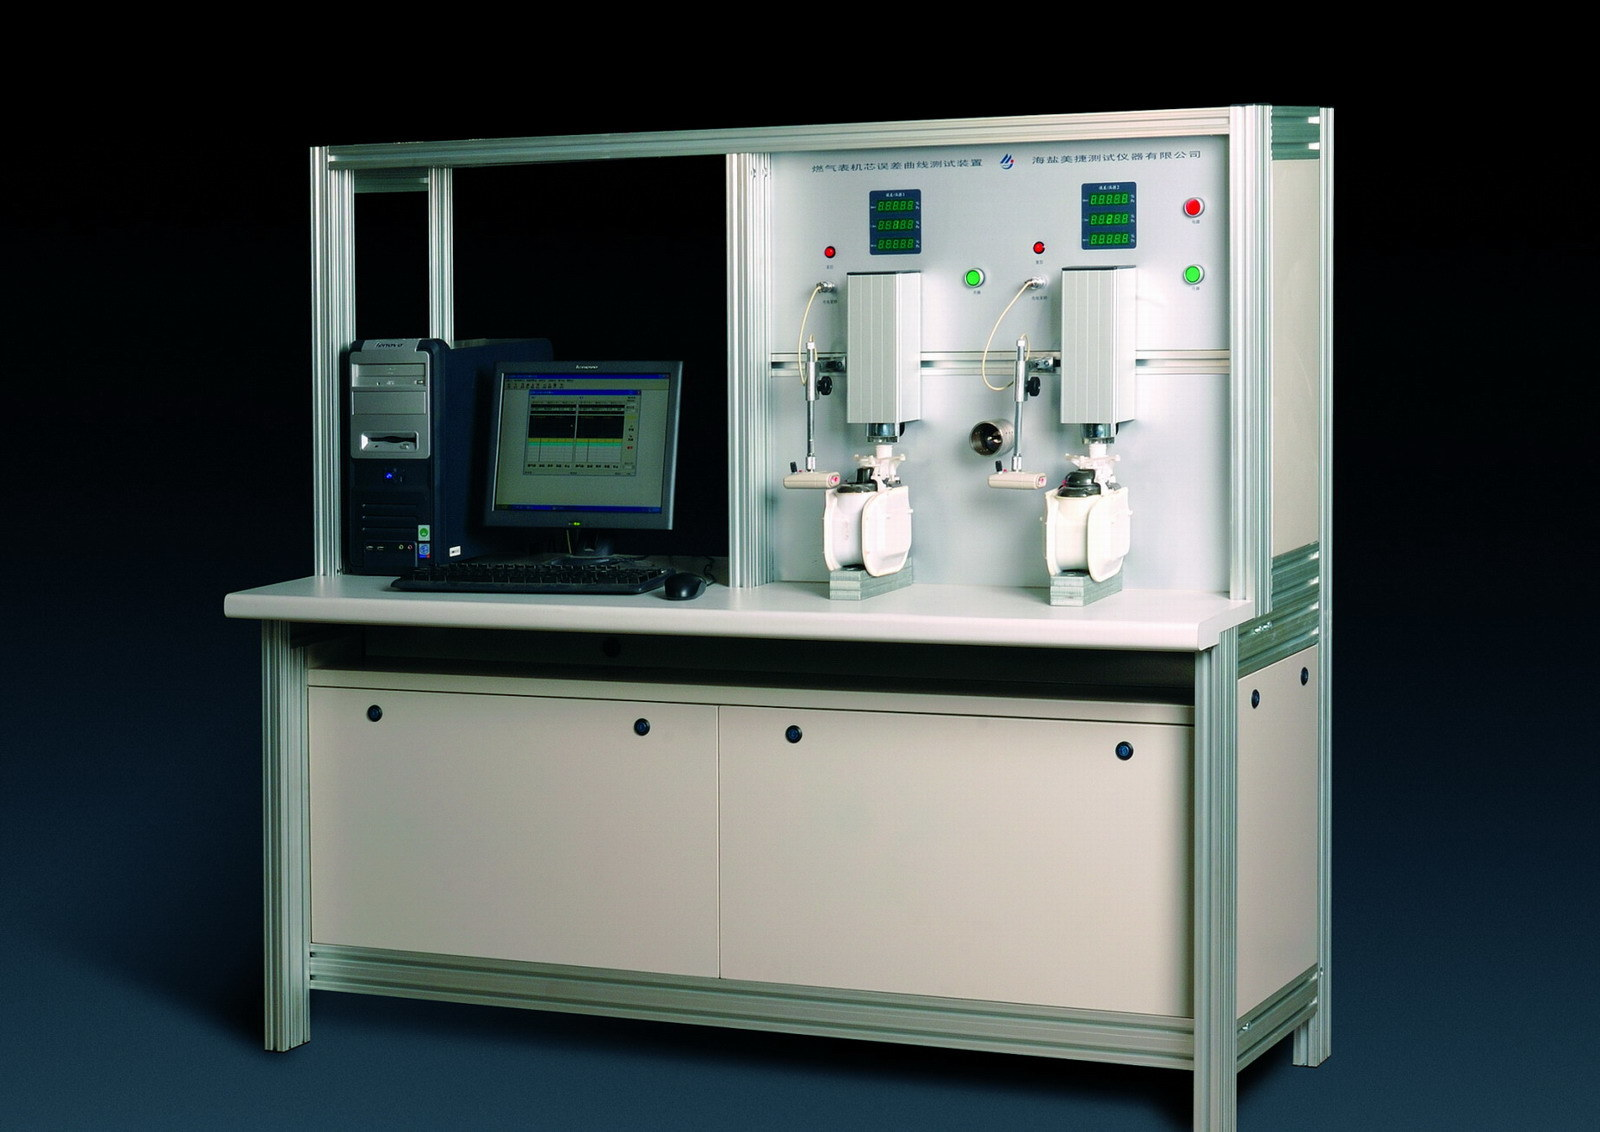 Measuring Unit Testing Giftsforsubs Integrated And Constant Isc2000 Ls2411 Measurement Uni